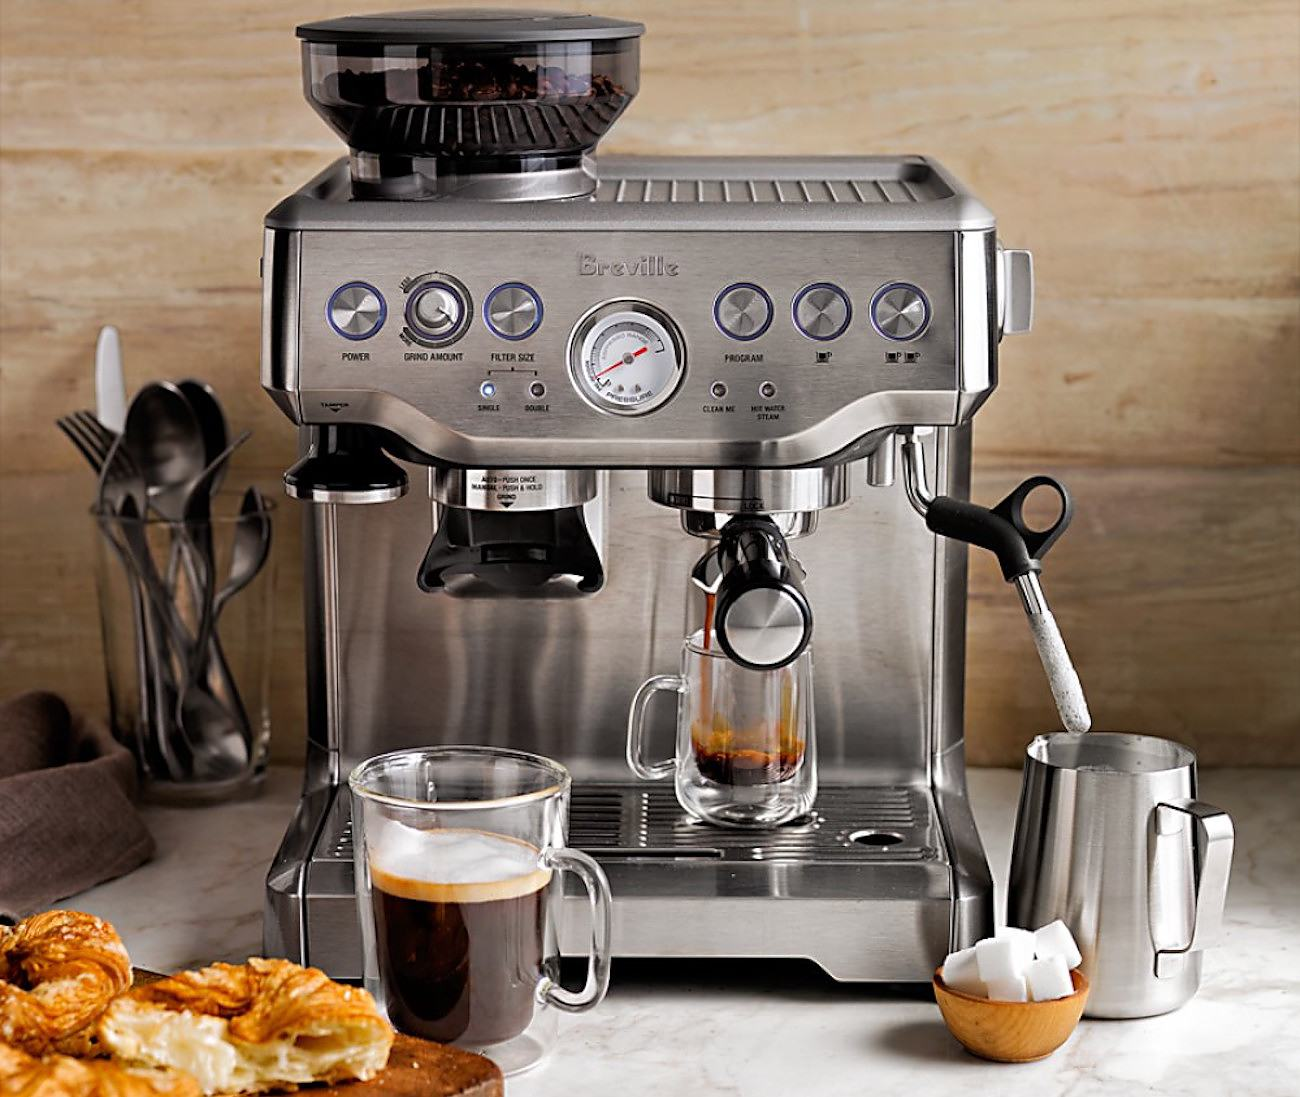 The best affordable espresso machines you can buy in 2019 - Breville Barista Express 2